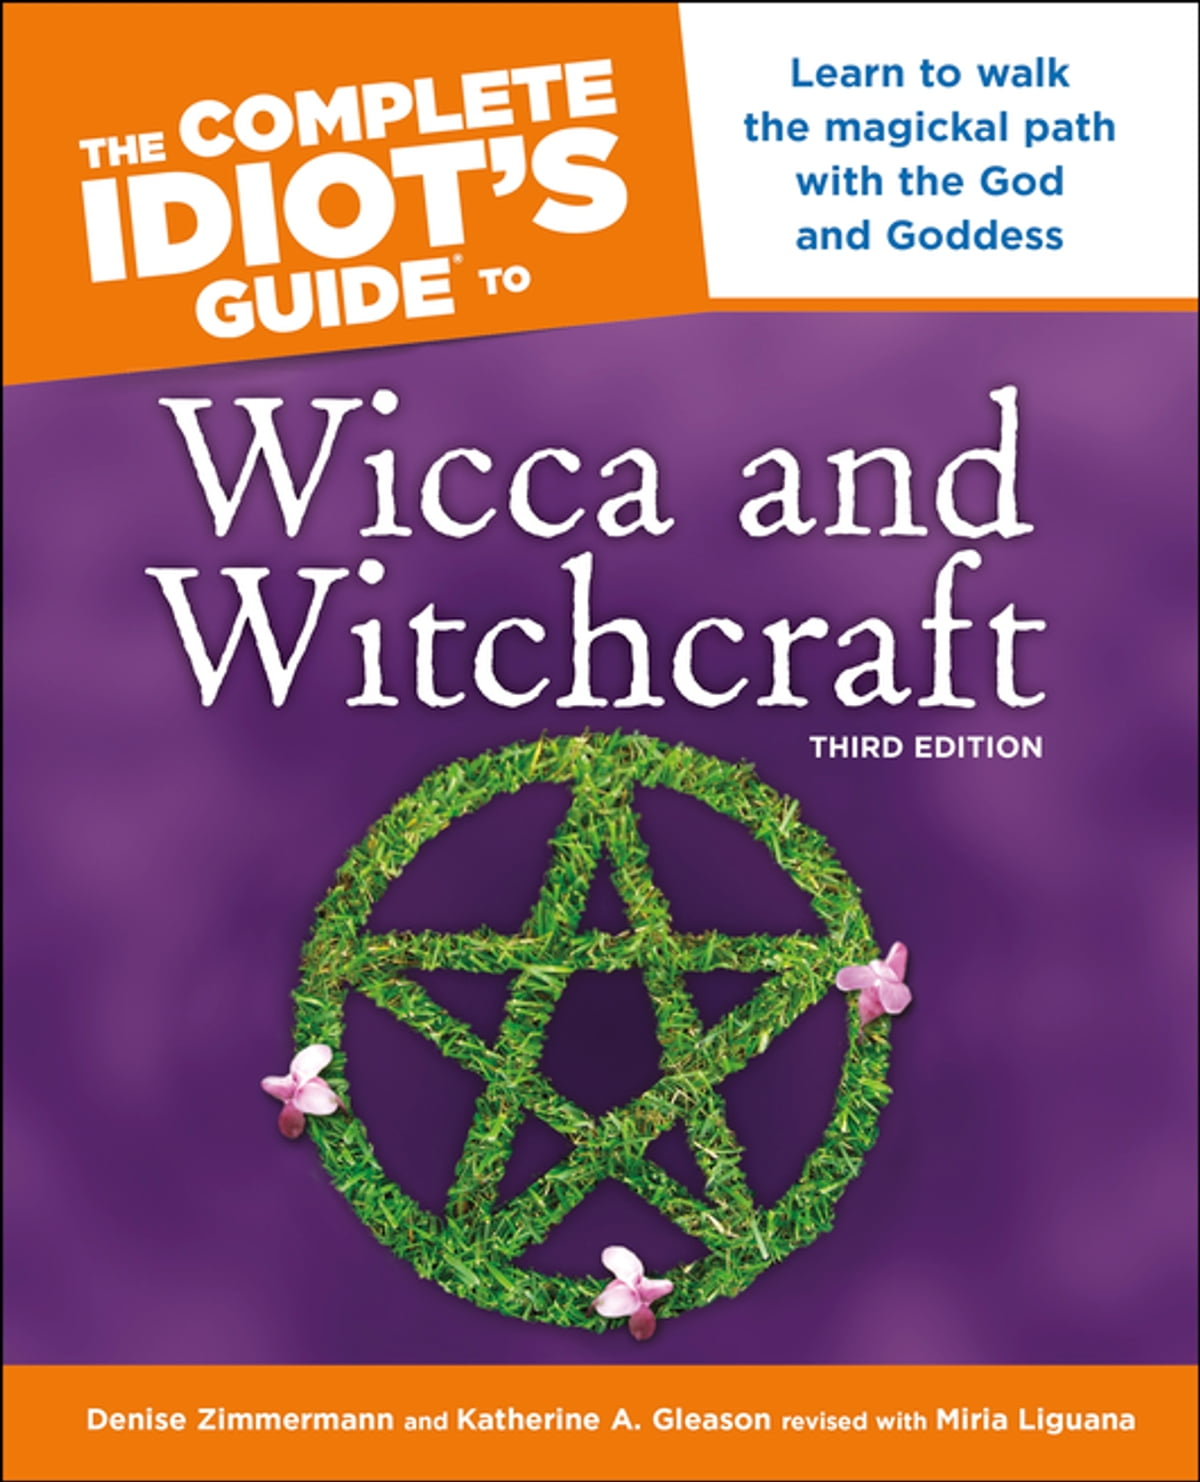 The Complete Idiot's Guide to Wicca and Witchcraft, 3rd Edition eBook by  Denise Zimmerman - 9781101097496 | Rakuten Kobo